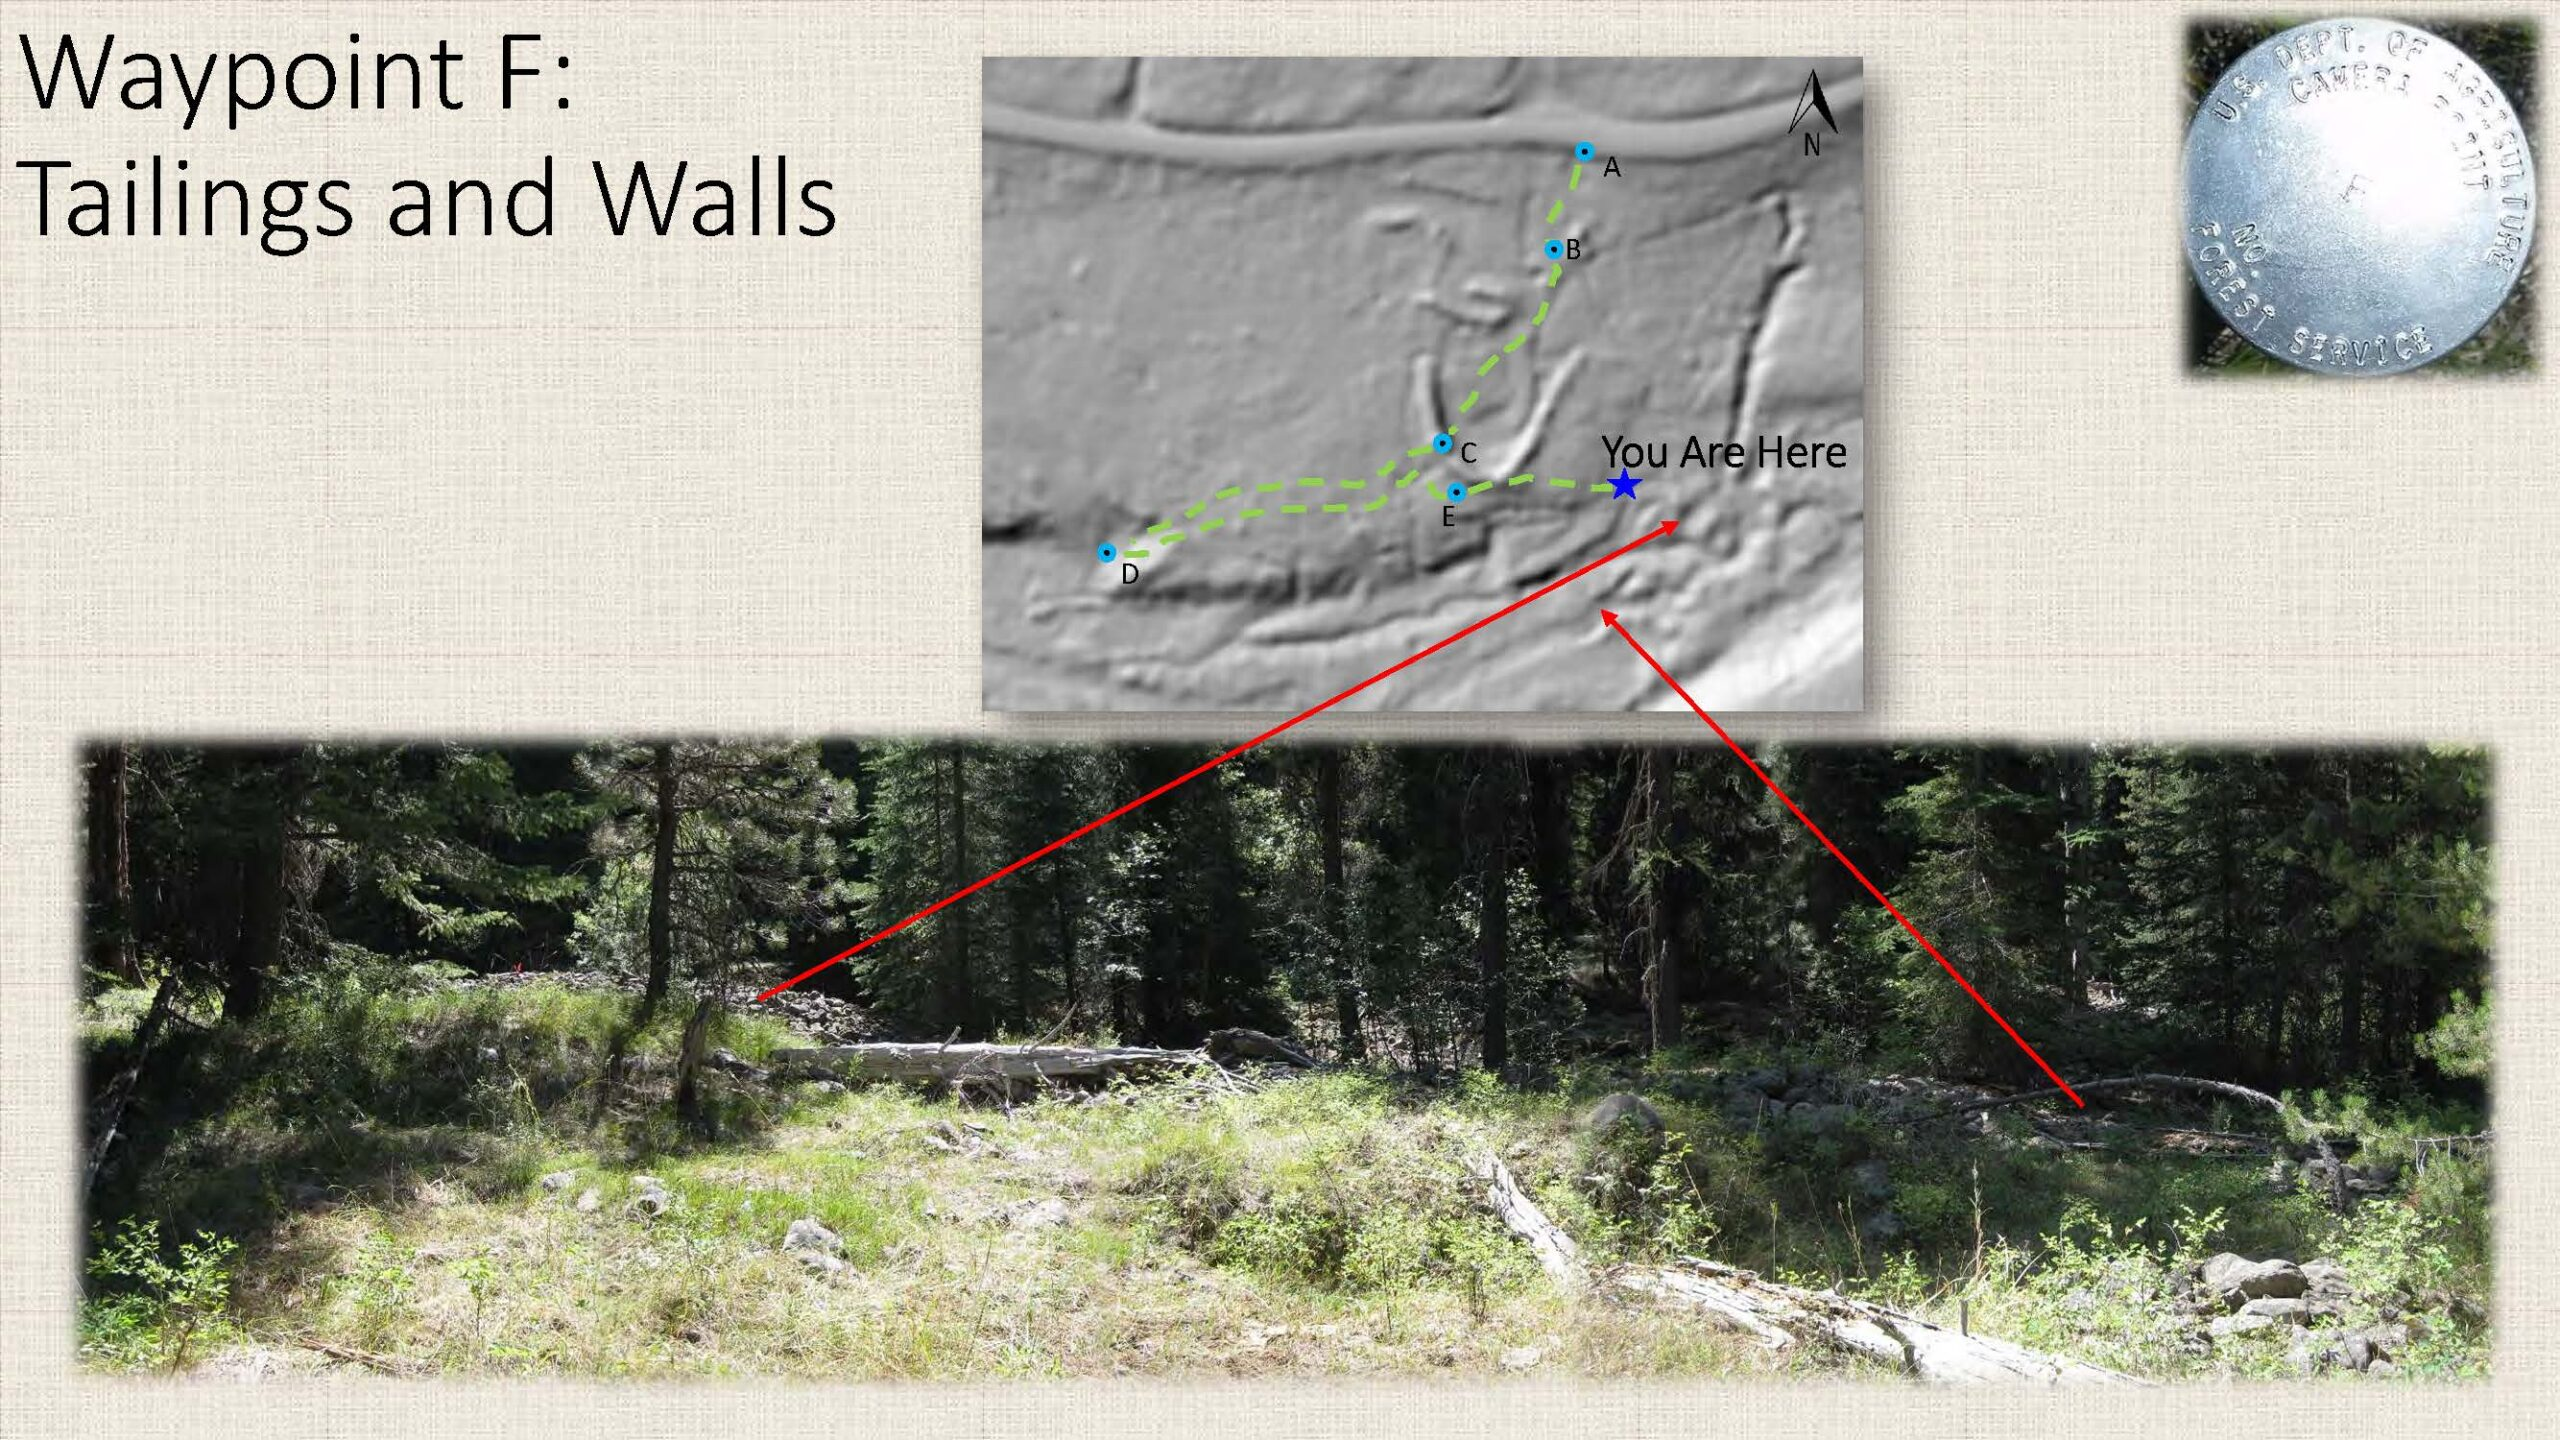 Waypoint F: Tailings and Walls